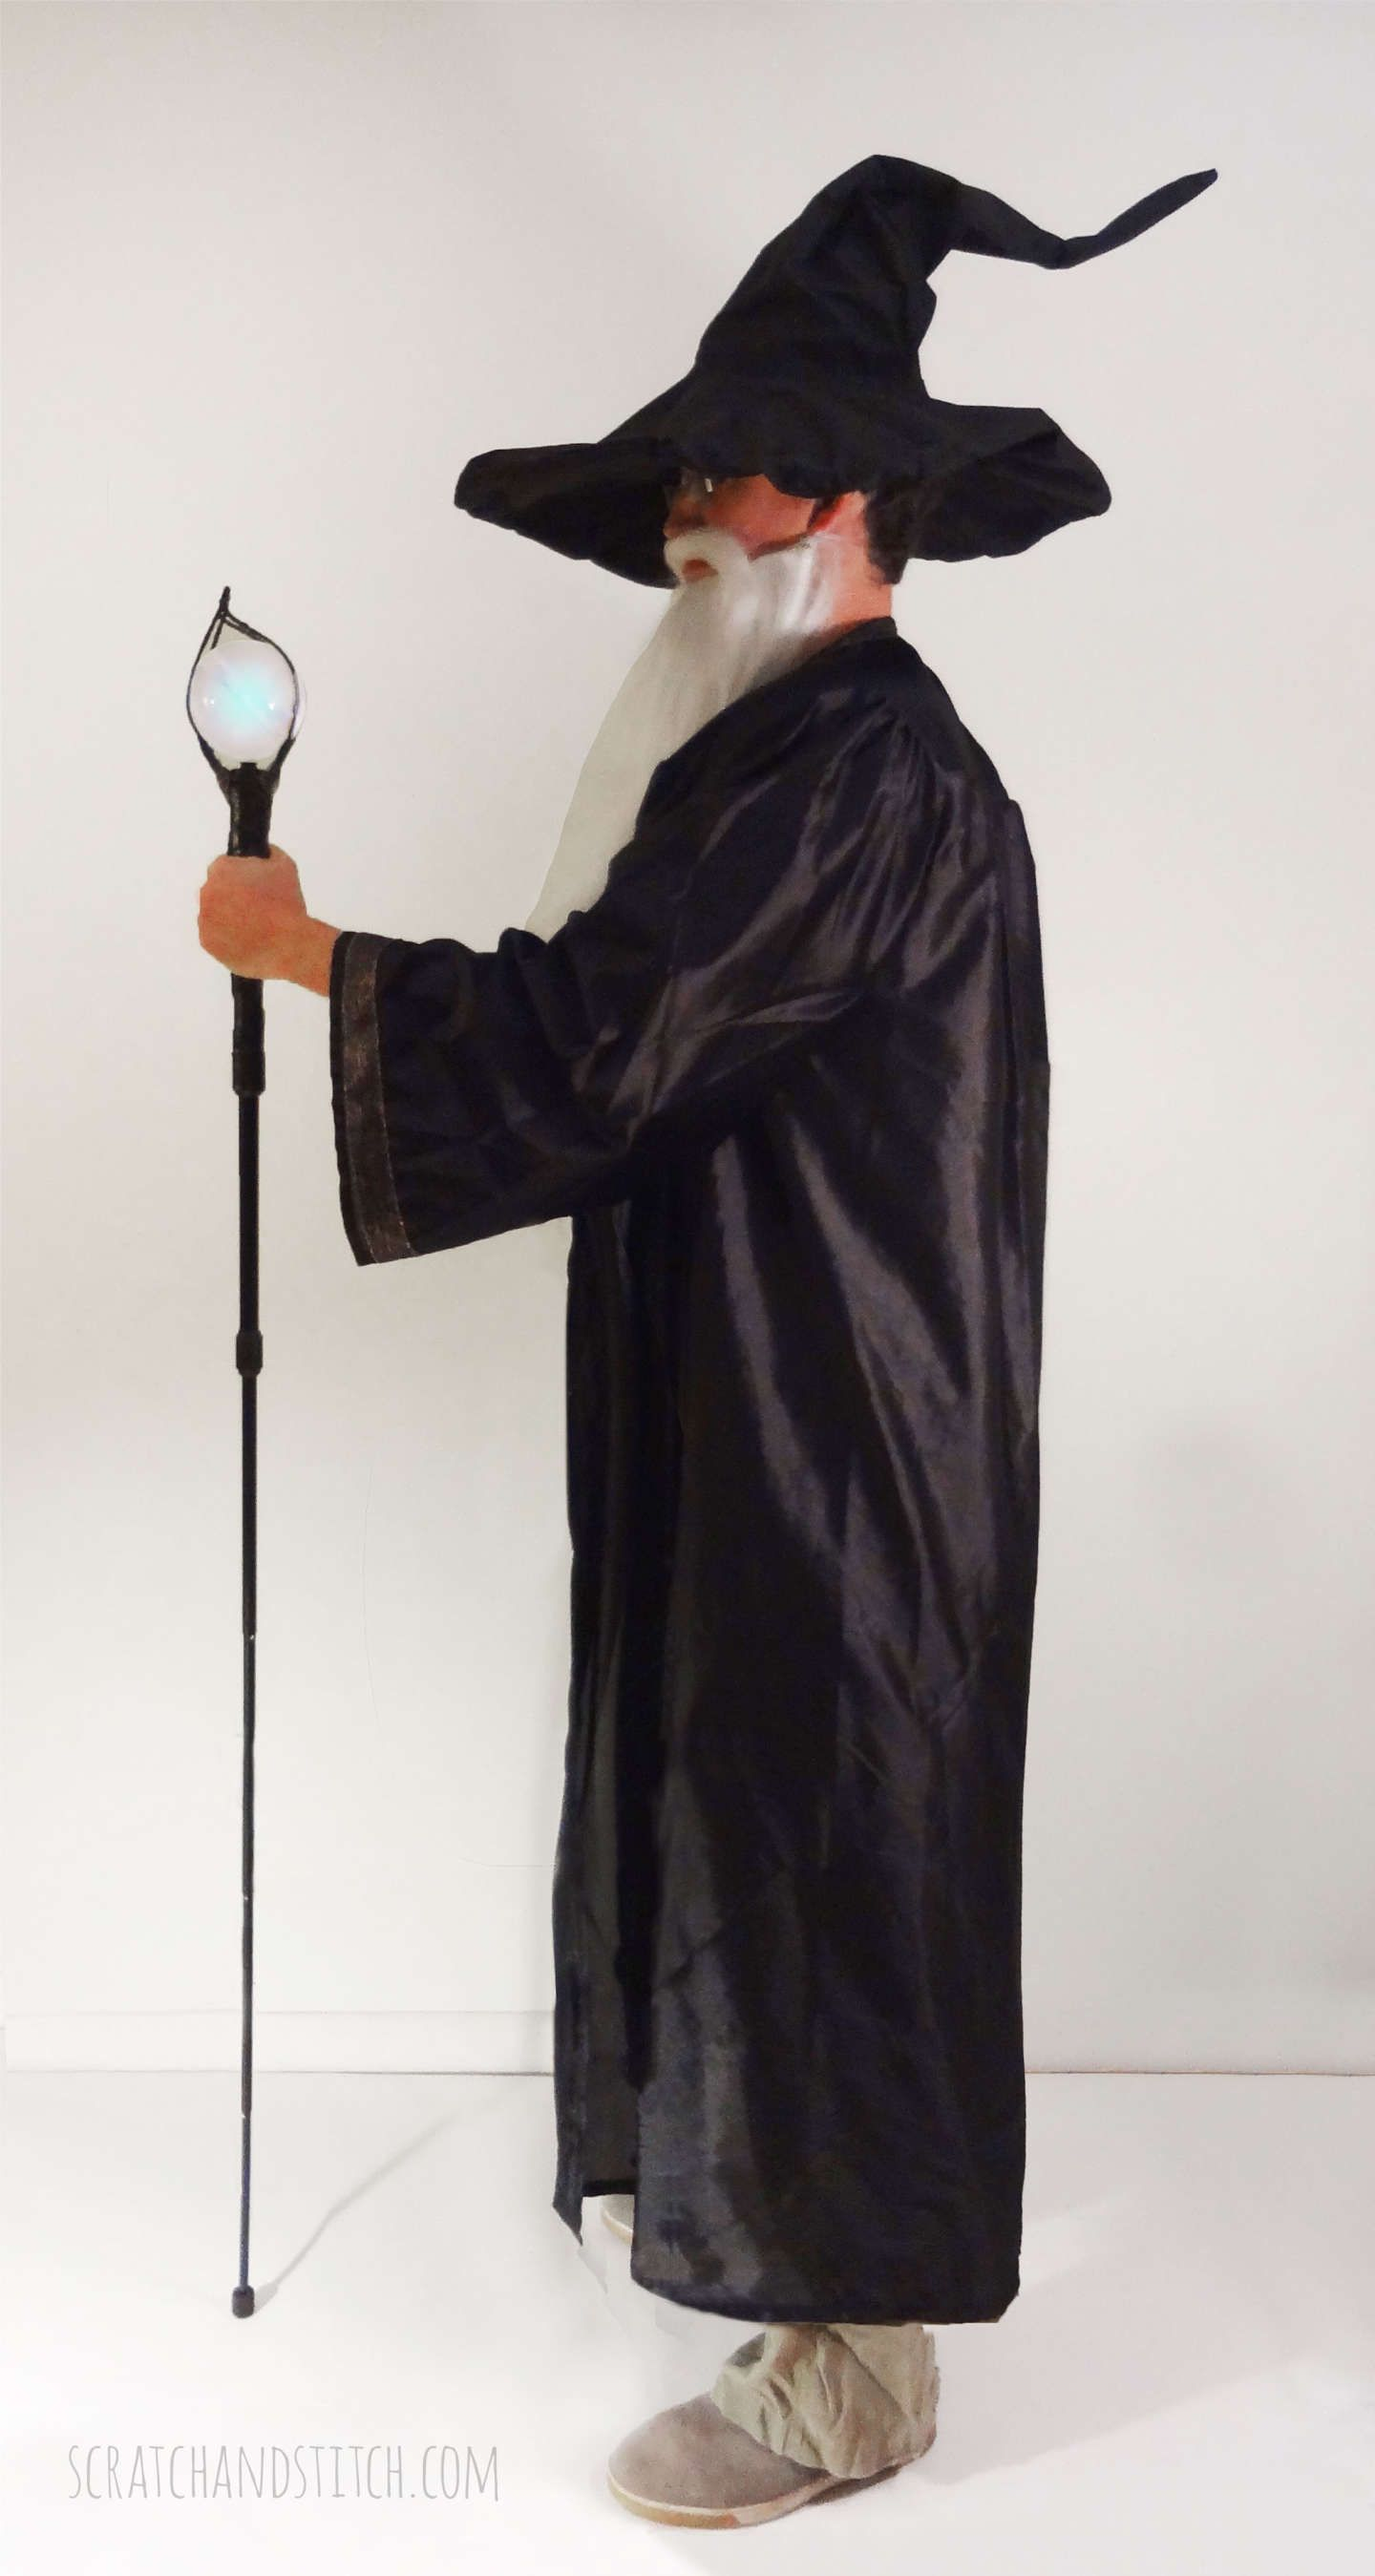 diy wizard costume tutorial by scratchandstitchcom